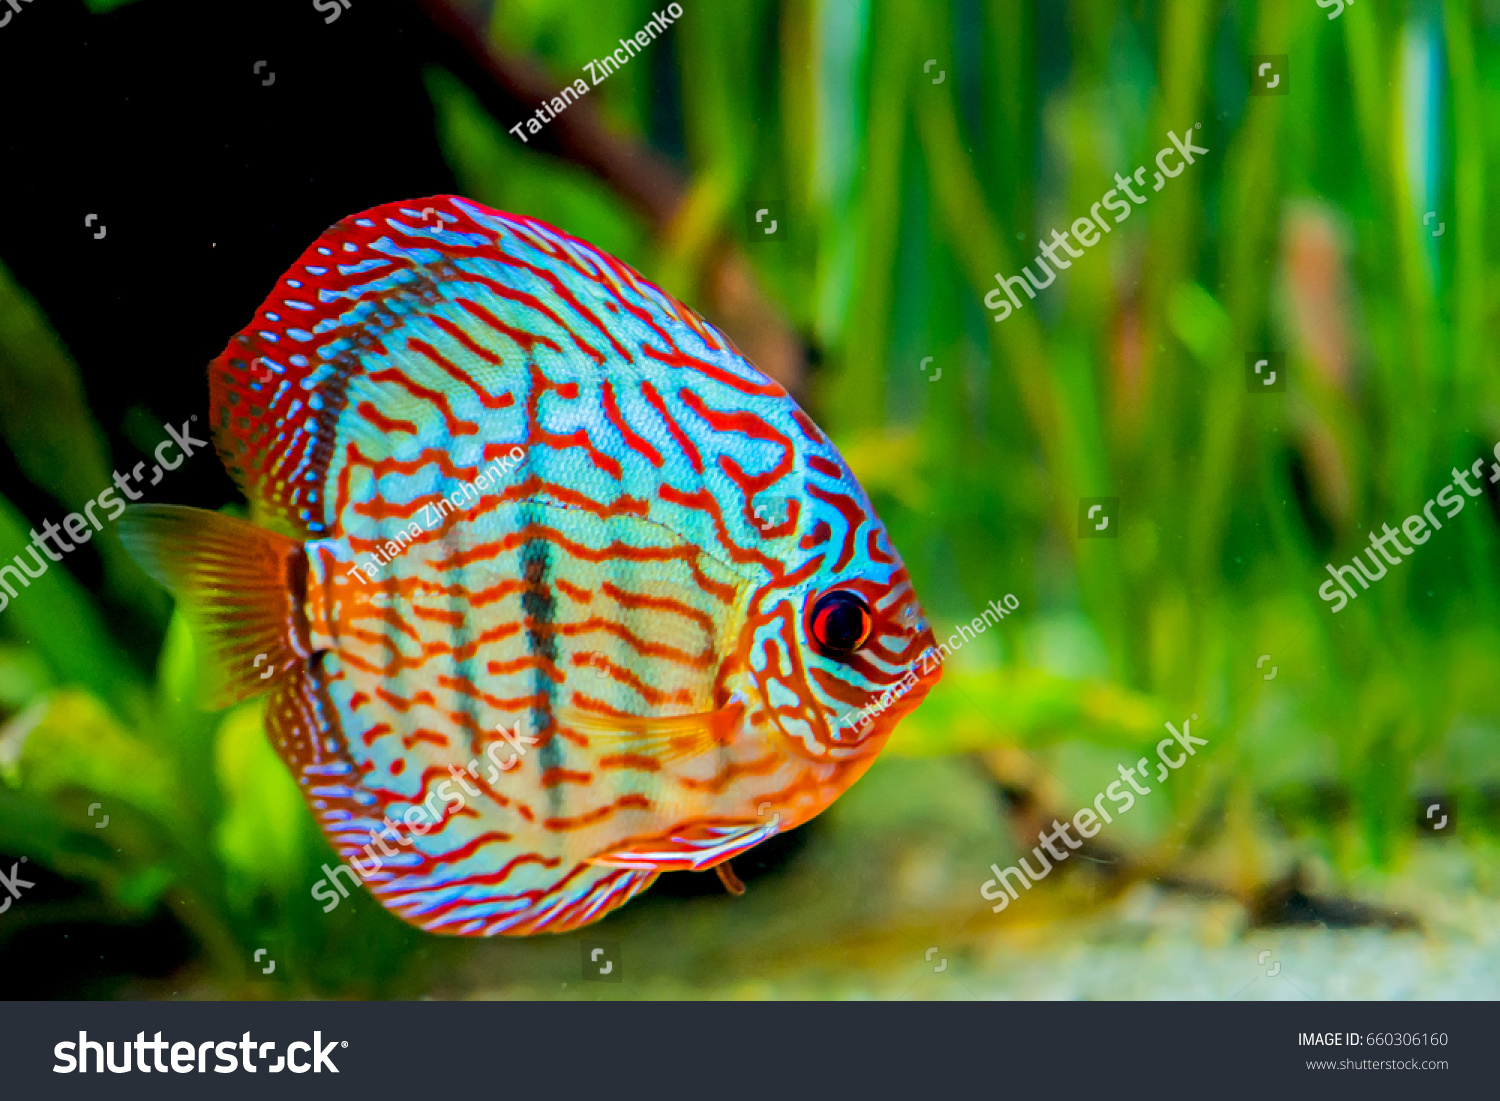 Funny Colorful Fish Aquarium Stock Photo (Safe to Use) 660306160 ...